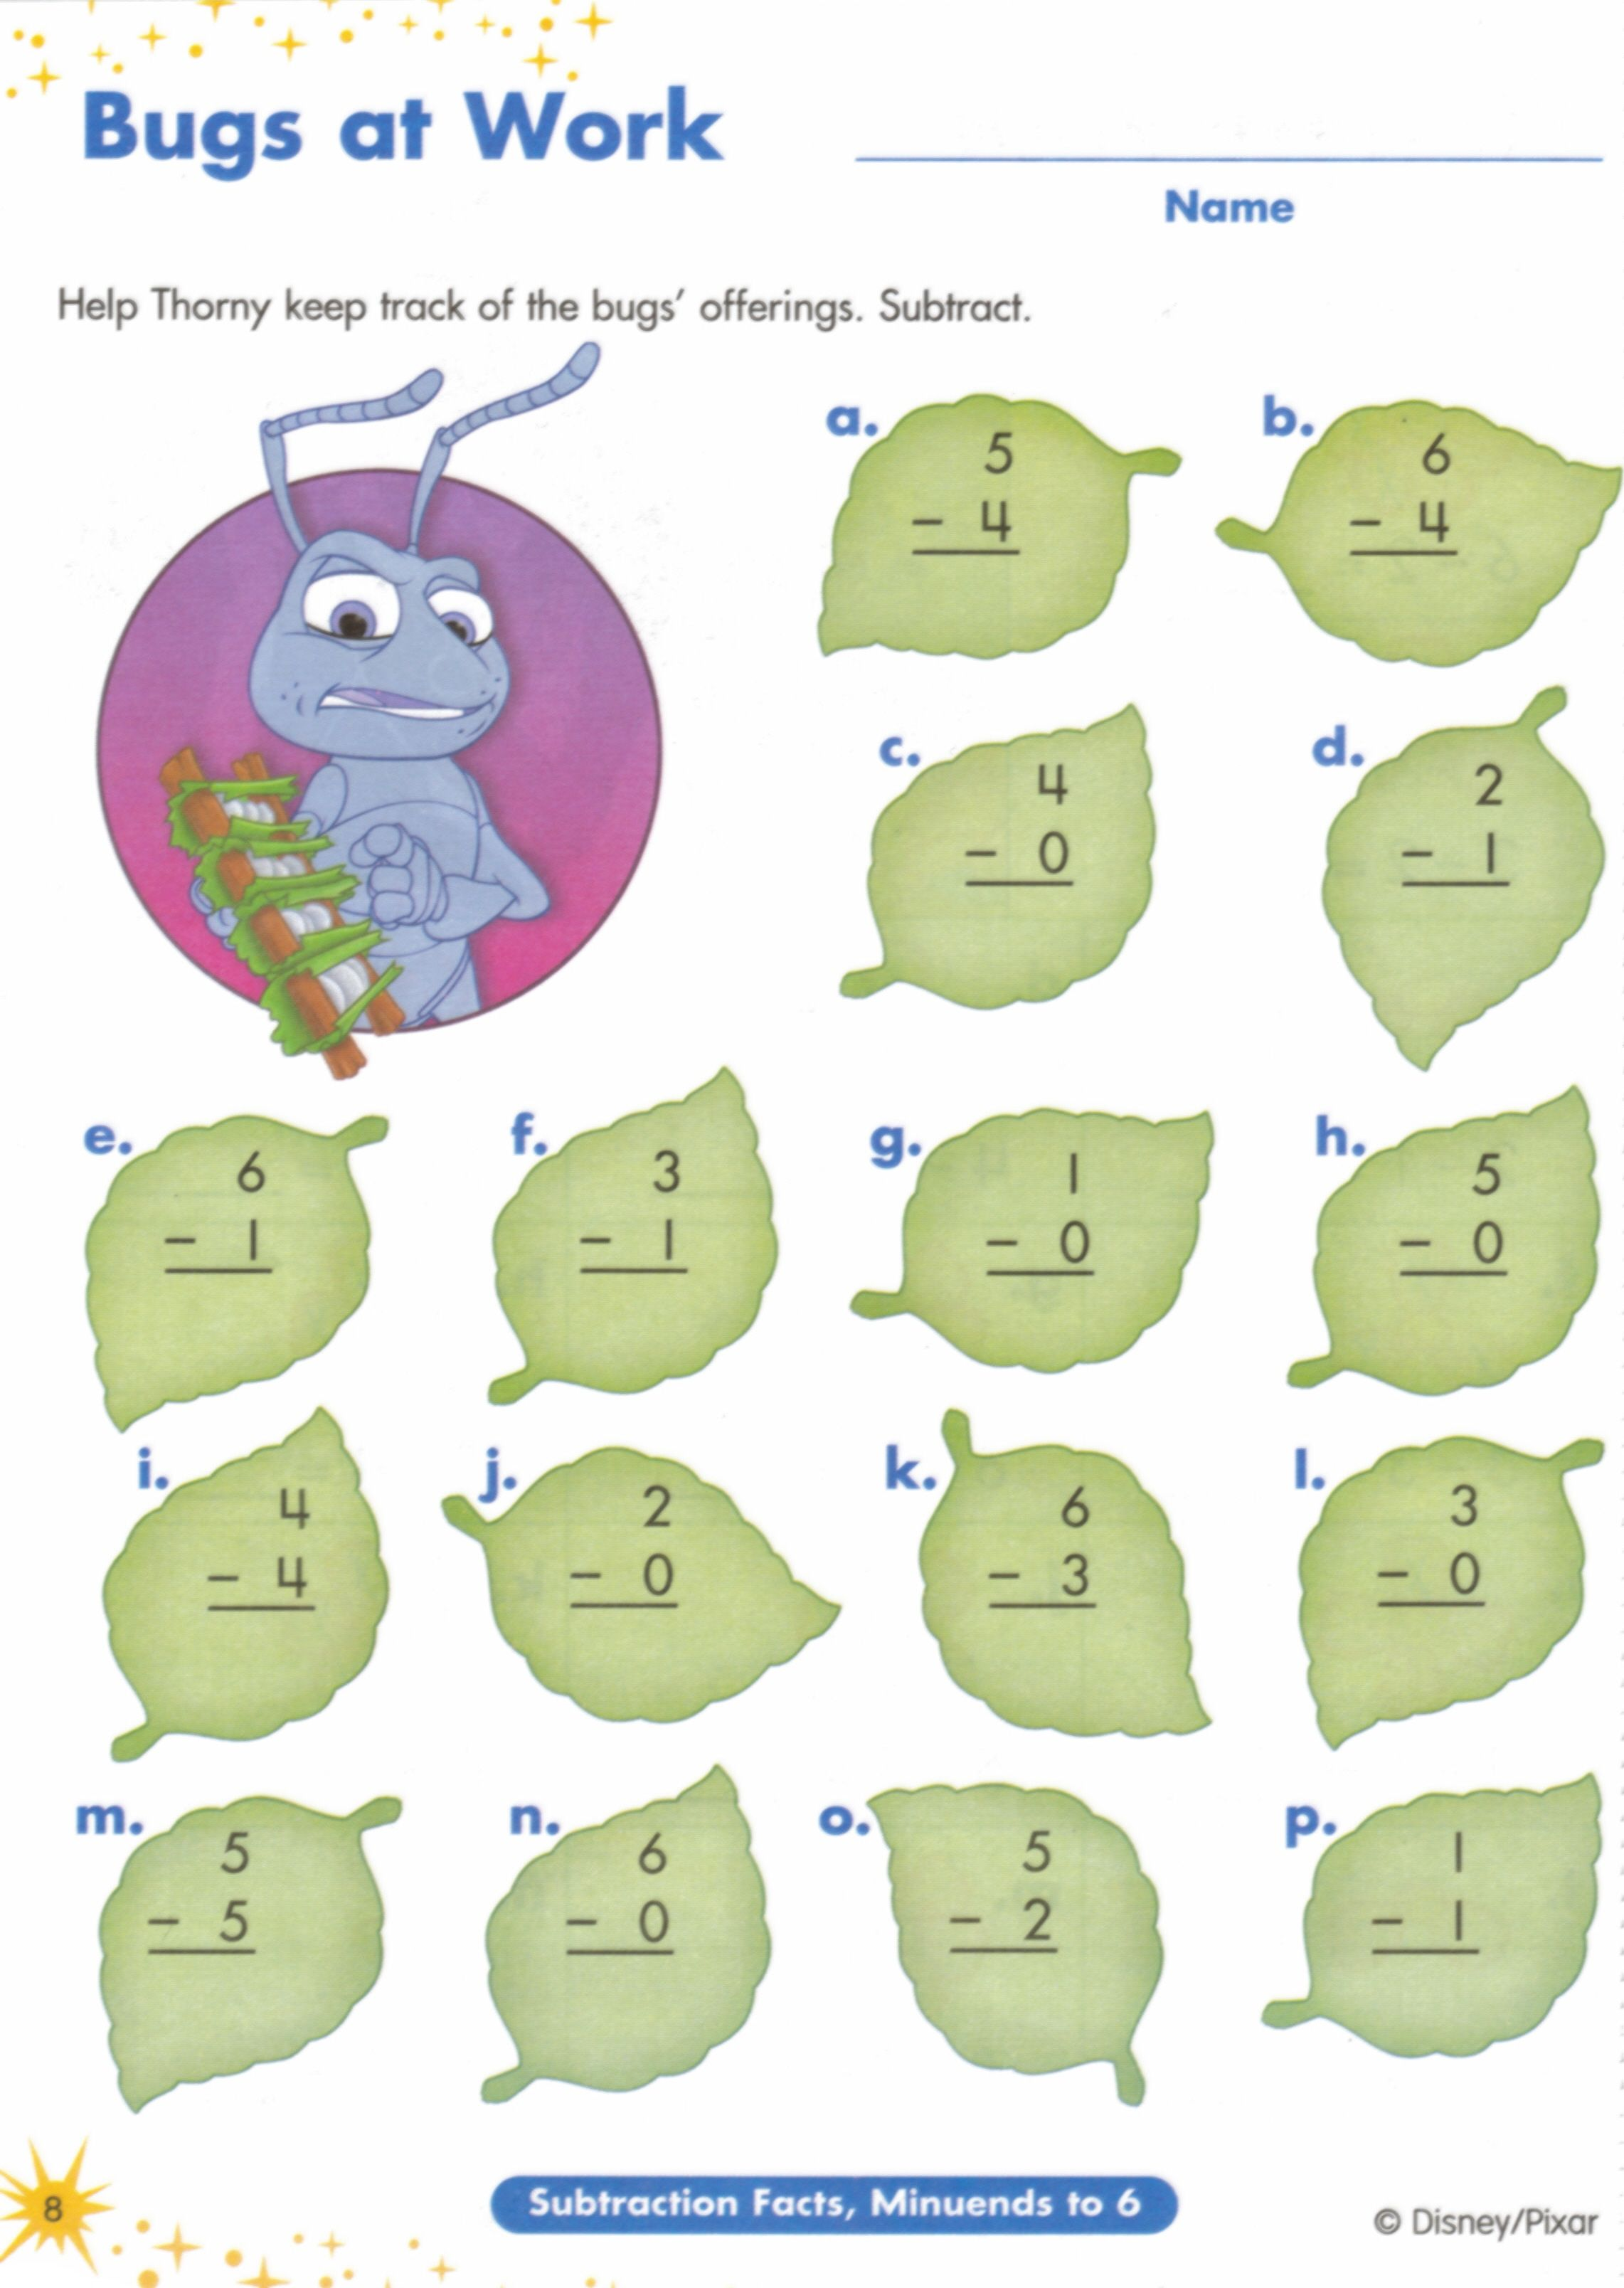 Proatmealus  Unique  Images About Worksheets On Pinterest  Fun Facts For Kids  With Luxury  Images About Worksheets On Pinterest  Fun Facts For Kids Earth Day Worksheets And Jungles With Nice Did You Hear About Worksheet Also Color By Number Worksheets In Addition Factoring Trinomials Worksheet And Worksheets As Well As St Grade Worksheets Additionally Phonics Worksheets From Pinterestcom With Proatmealus  Luxury  Images About Worksheets On Pinterest  Fun Facts For Kids  With Nice  Images About Worksheets On Pinterest  Fun Facts For Kids Earth Day Worksheets And Jungles And Unique Did You Hear About Worksheet Also Color By Number Worksheets In Addition Factoring Trinomials Worksheet From Pinterestcom